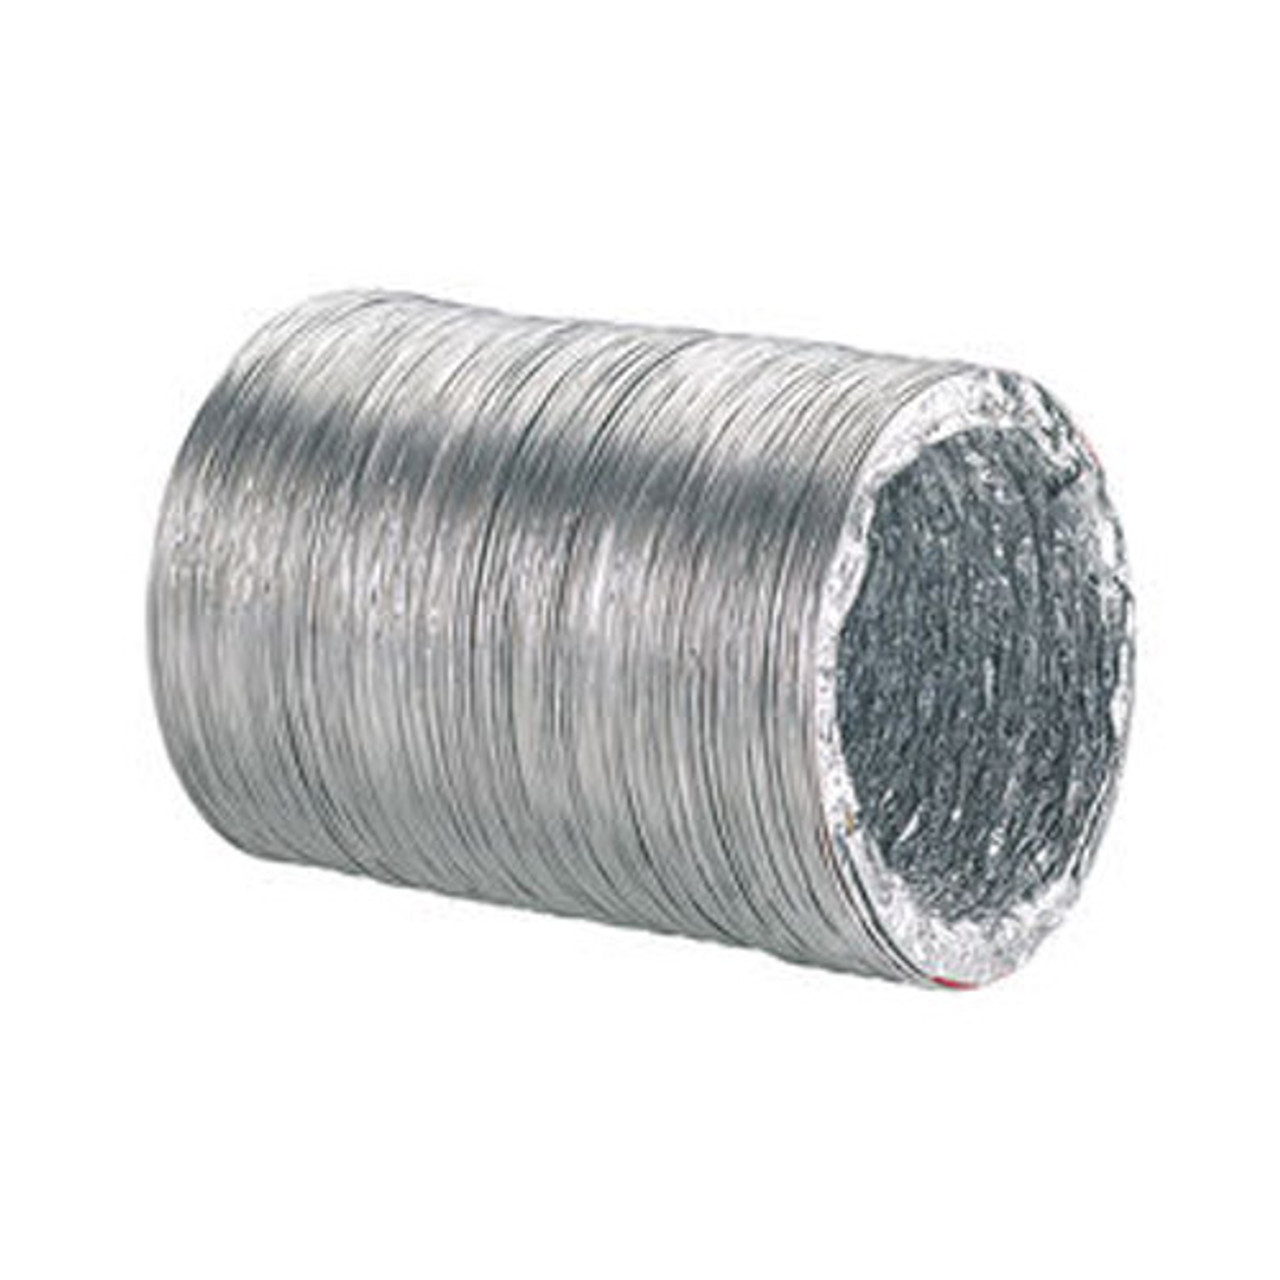 DUCTING NUDE SILVER ALUMINIUM 150MM X FIVE METRE BOXED